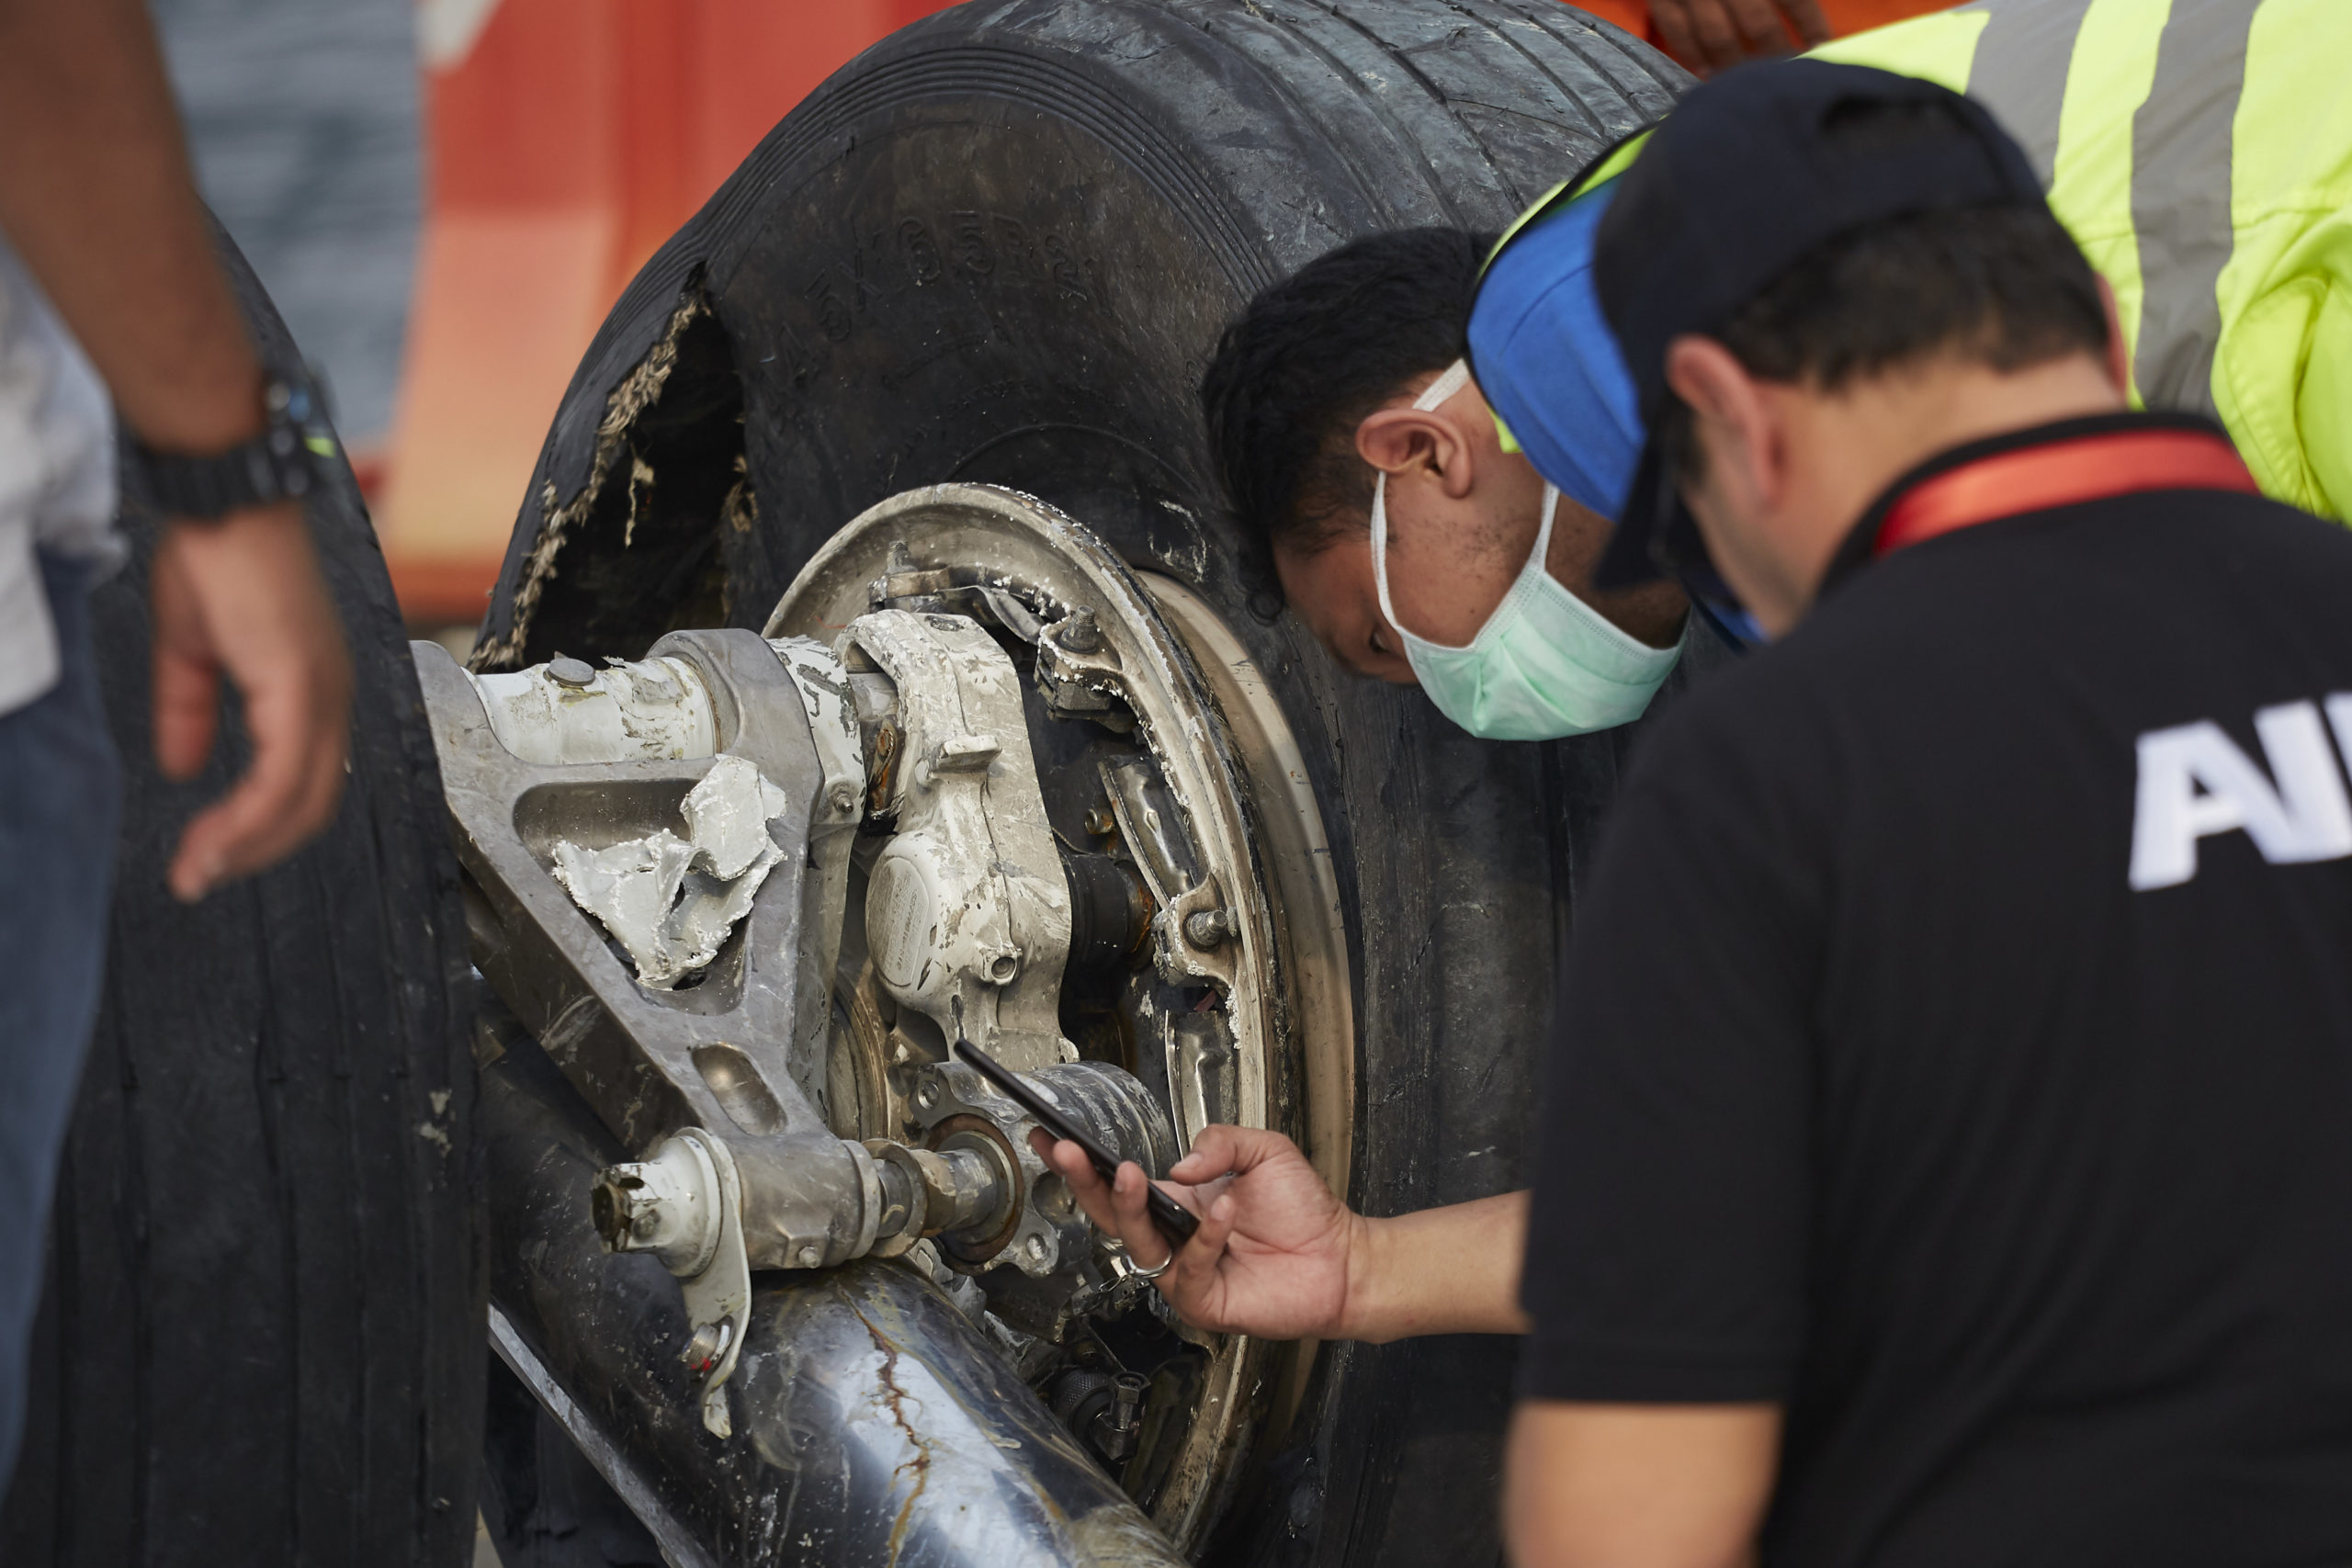 JAKARTA, INDONESIA - NOVEMBER 3: Indonesian investigators inspect the wrecked landing gear of Lion Air Flight JT 610 at the Tanjung Priok port on November 3, 2018 in Jakarta, Indonesia. Indonesian authorities said on Saturday that a diver who joined the search operation for Lion Air flight 610 had died after being found unconscious on Friday, possibly due to an accident while diving. All 189 passengers and crew for the Boeing 737 plane are feared dead as rescuers as investigators and agencies from around the world continue its week-long search for victims and the cockpit voice recorder which might solve the mystery to the deadly crash into the Java sea shortly after takeoff. (Photo by Ed Wray/Getty Images)